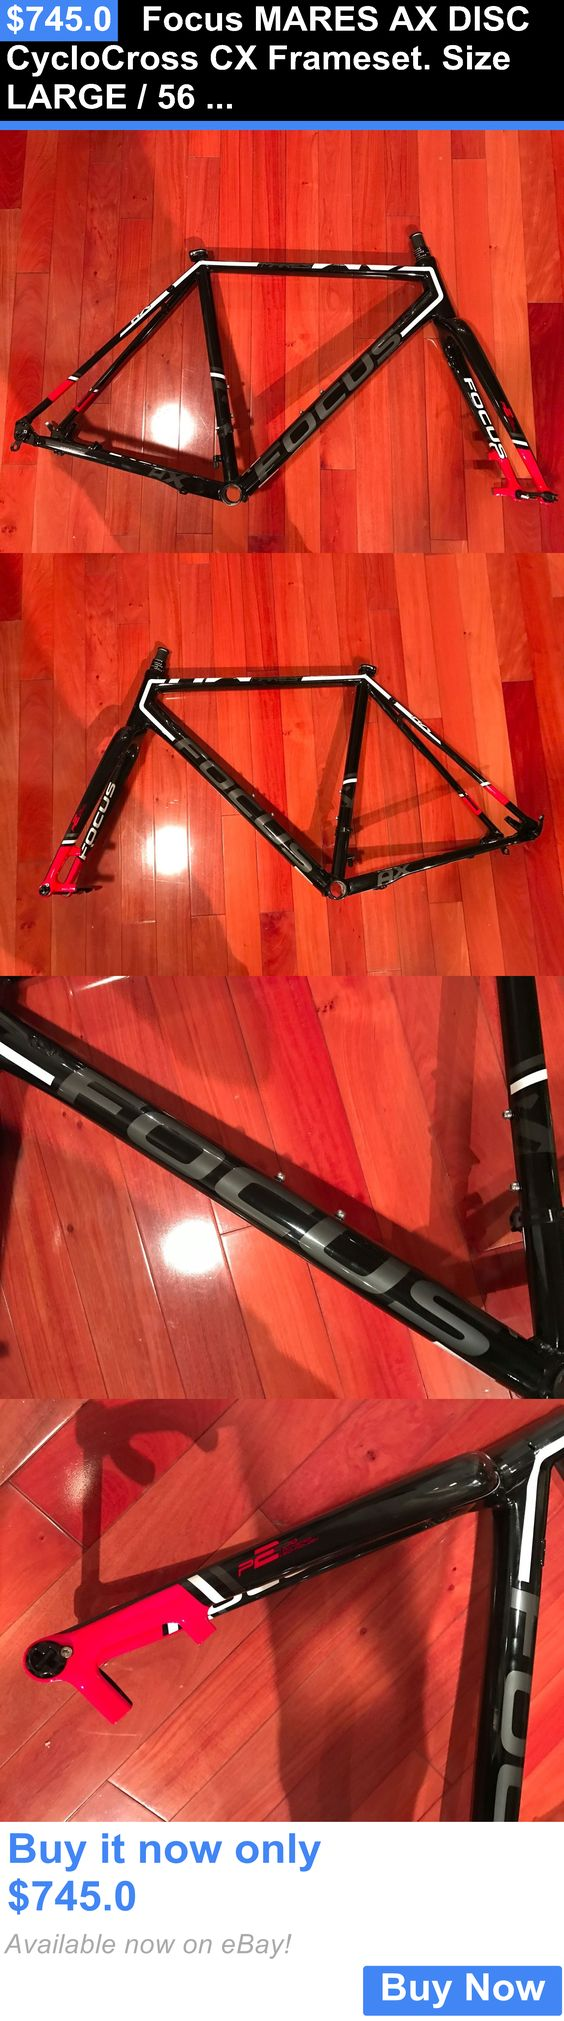 bicycle parts: Focus Mares Ax Disc Cyclocross Cx Frameset. Size Large / 56 Cm. BUY IT NOW ONLY: $745.0